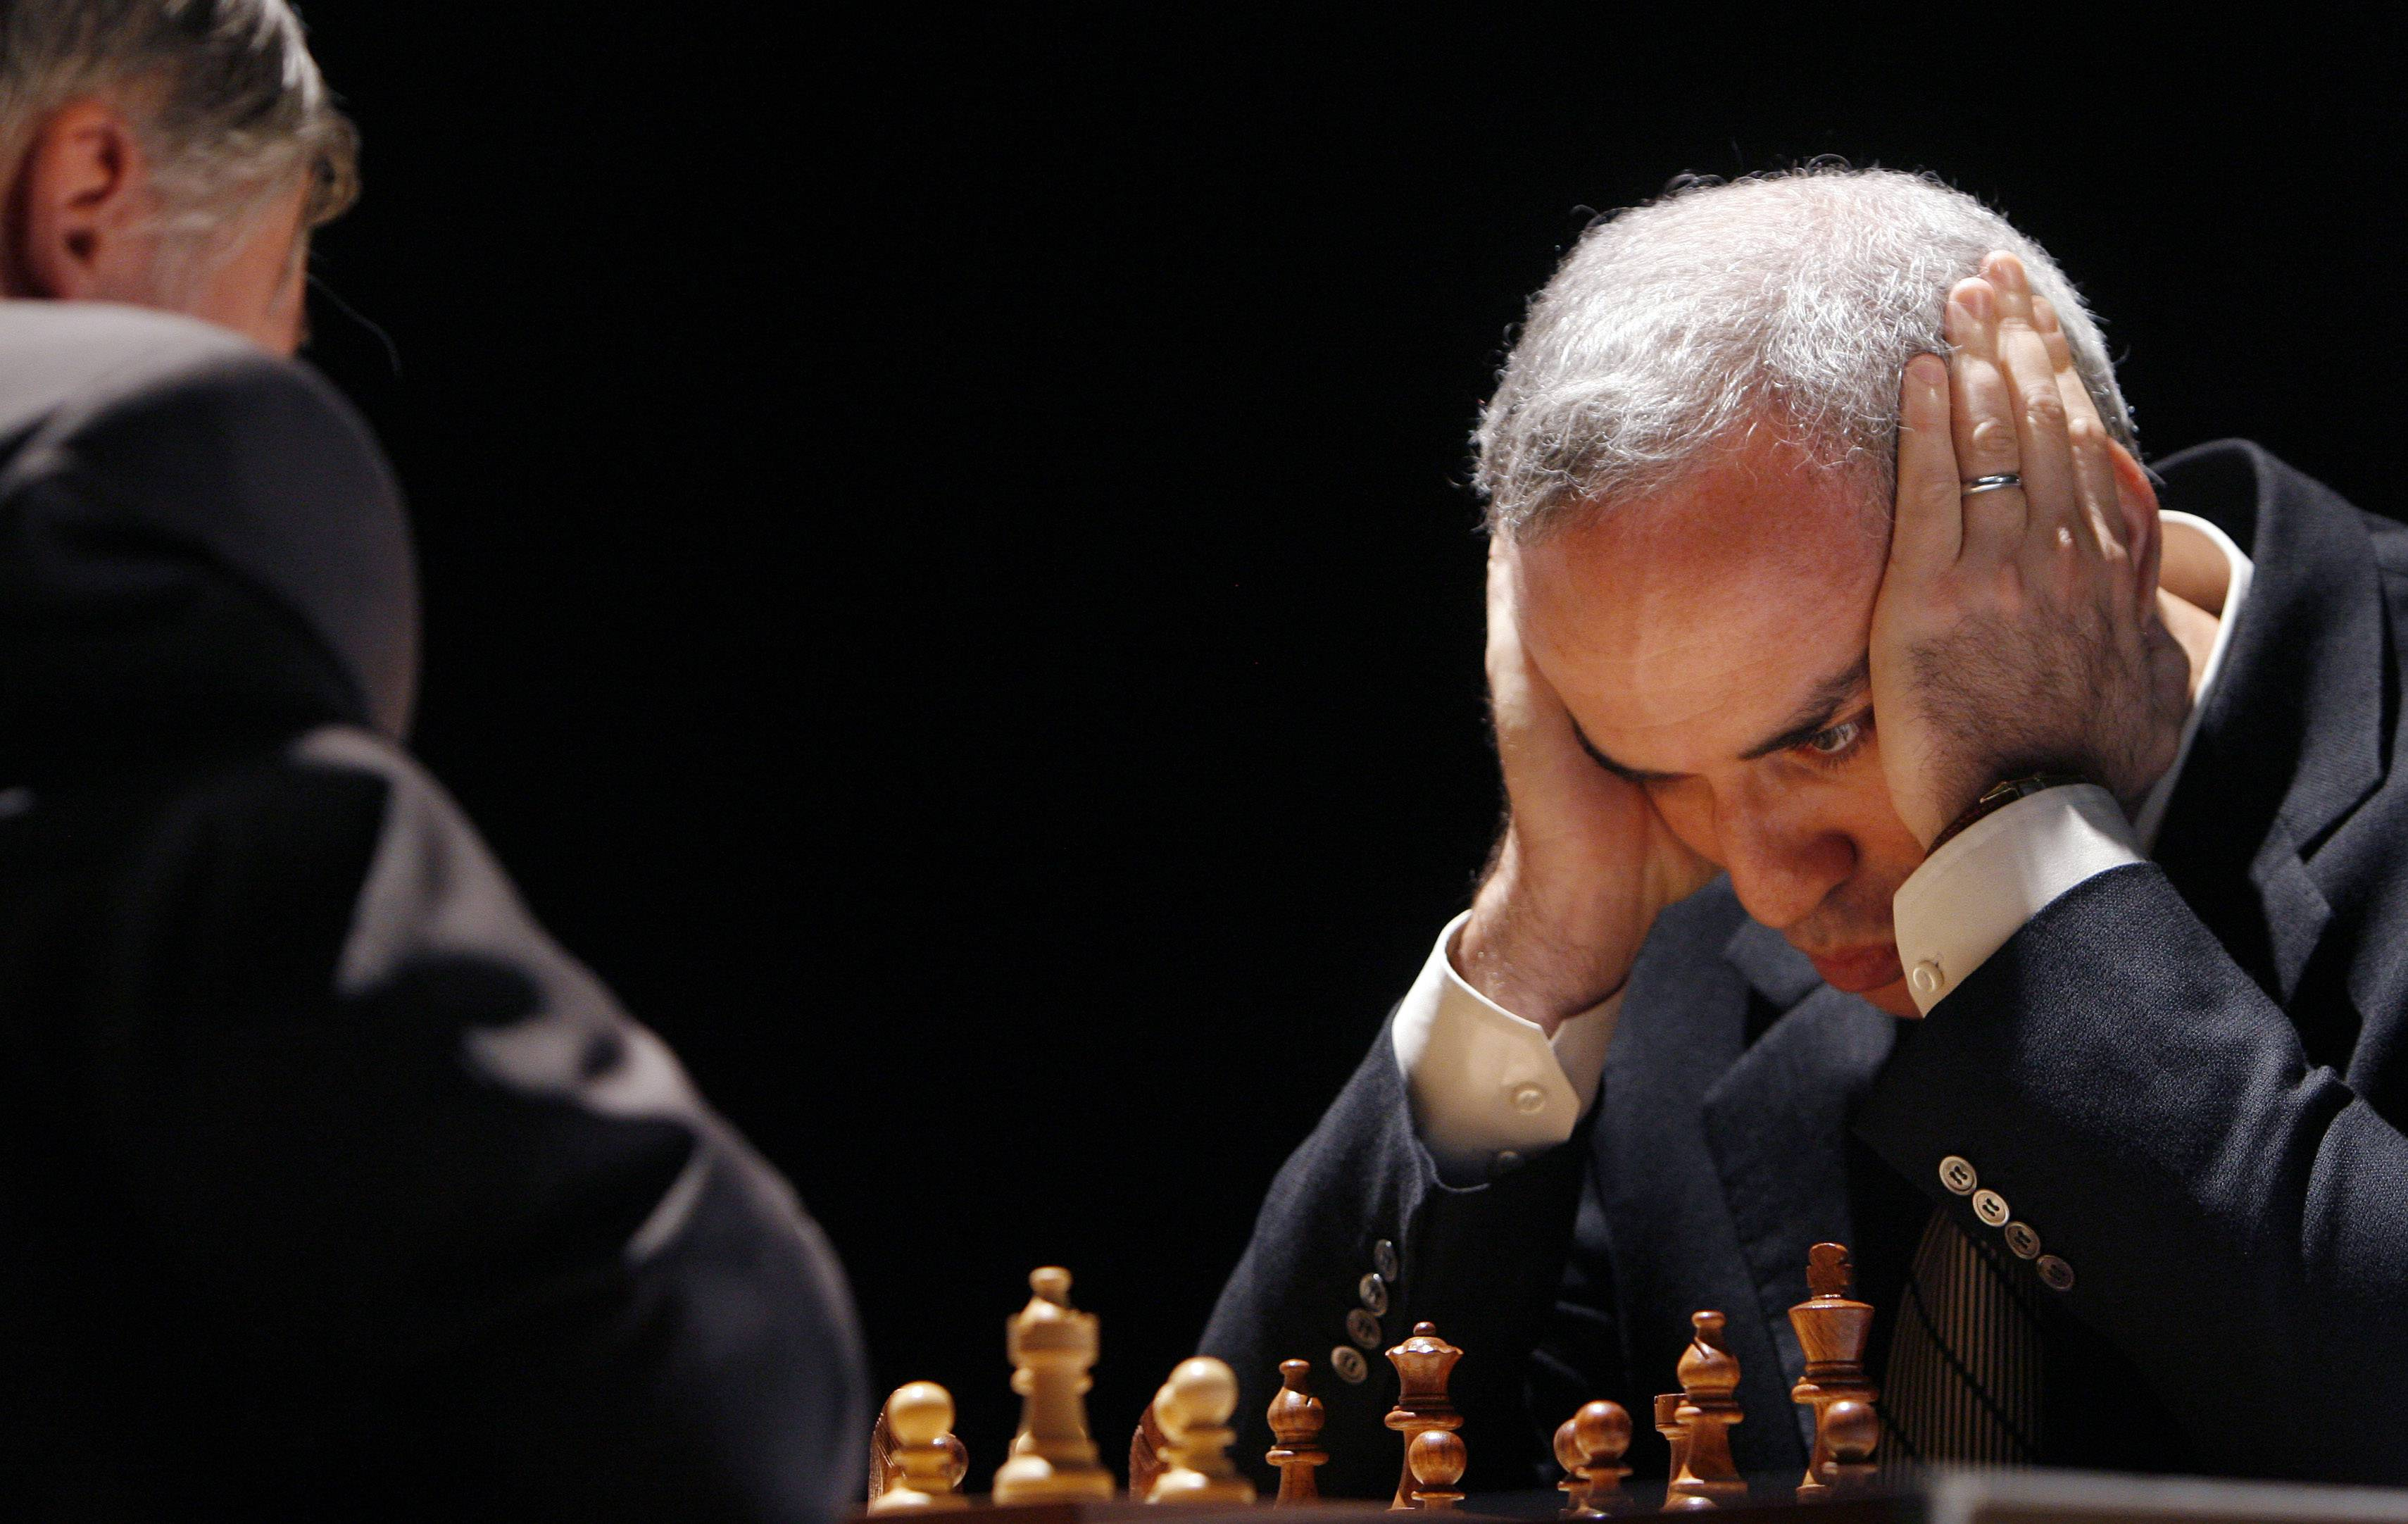 In this Tuesday, 2009 photo, former chess world champion Garry Kasparov, right, and Anatoly Karpov, left, play an exhibition rematch in Valencia, Spain.